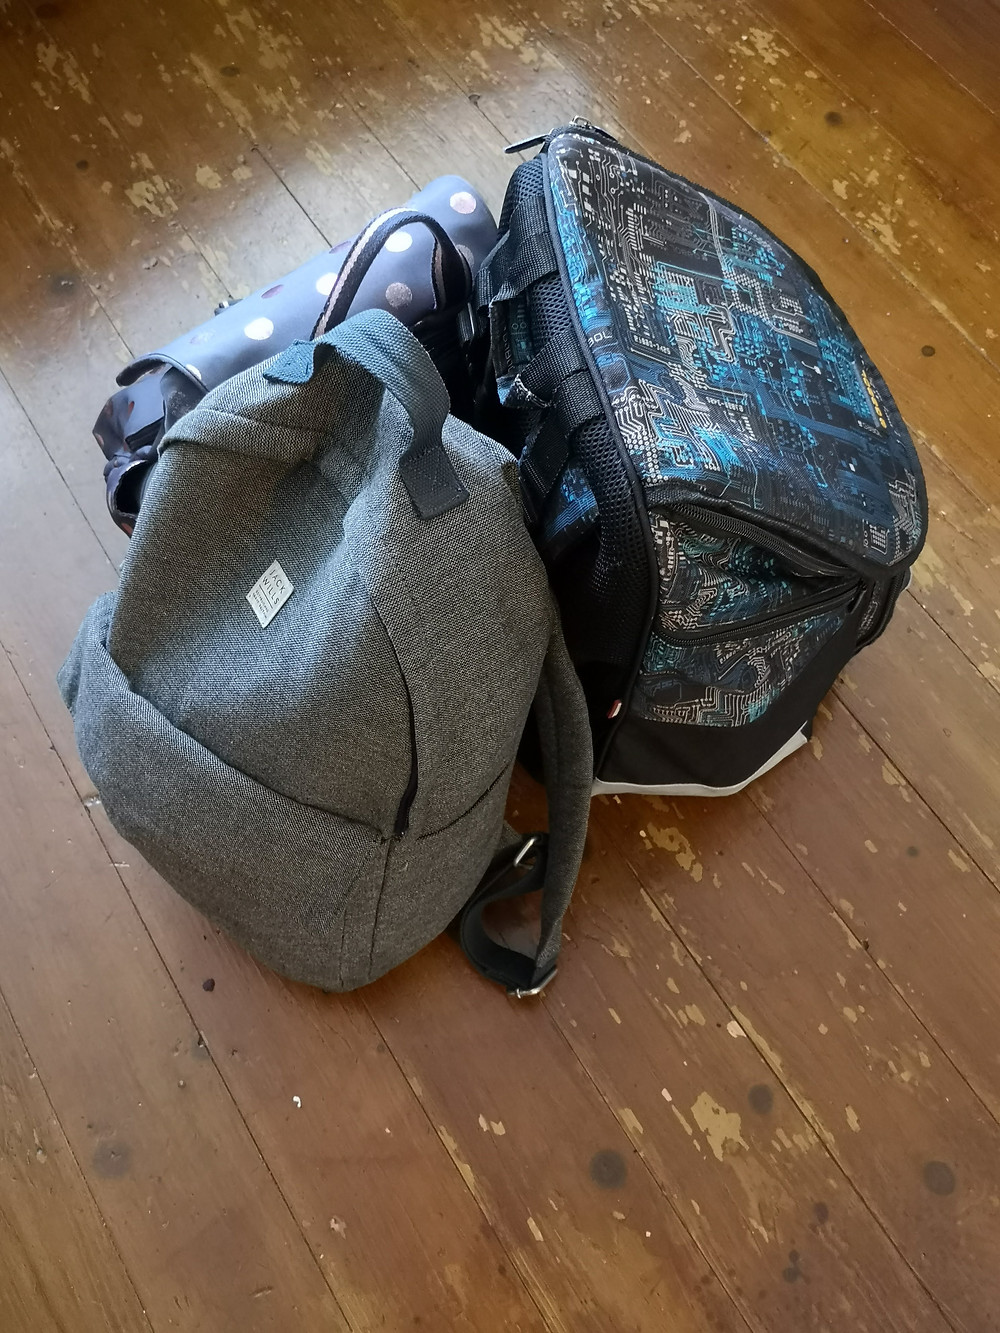 An image of backpacks